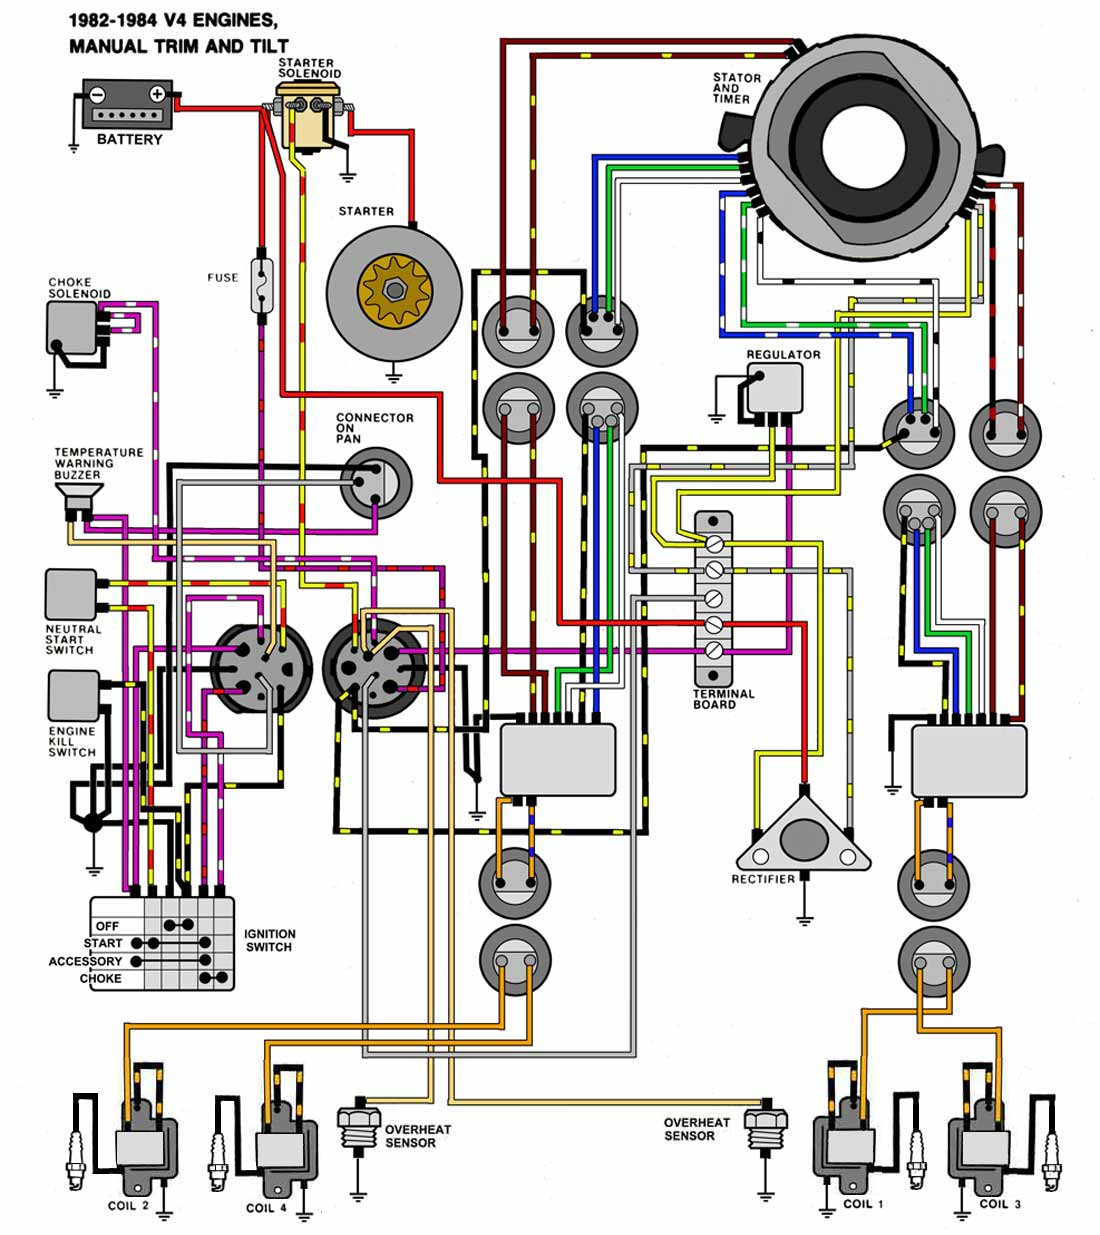 Evinrude Wiring Diagram Outboards 76 Evinrude Wiring Diagram – Johnson Ignition Switch Wiring Diagram